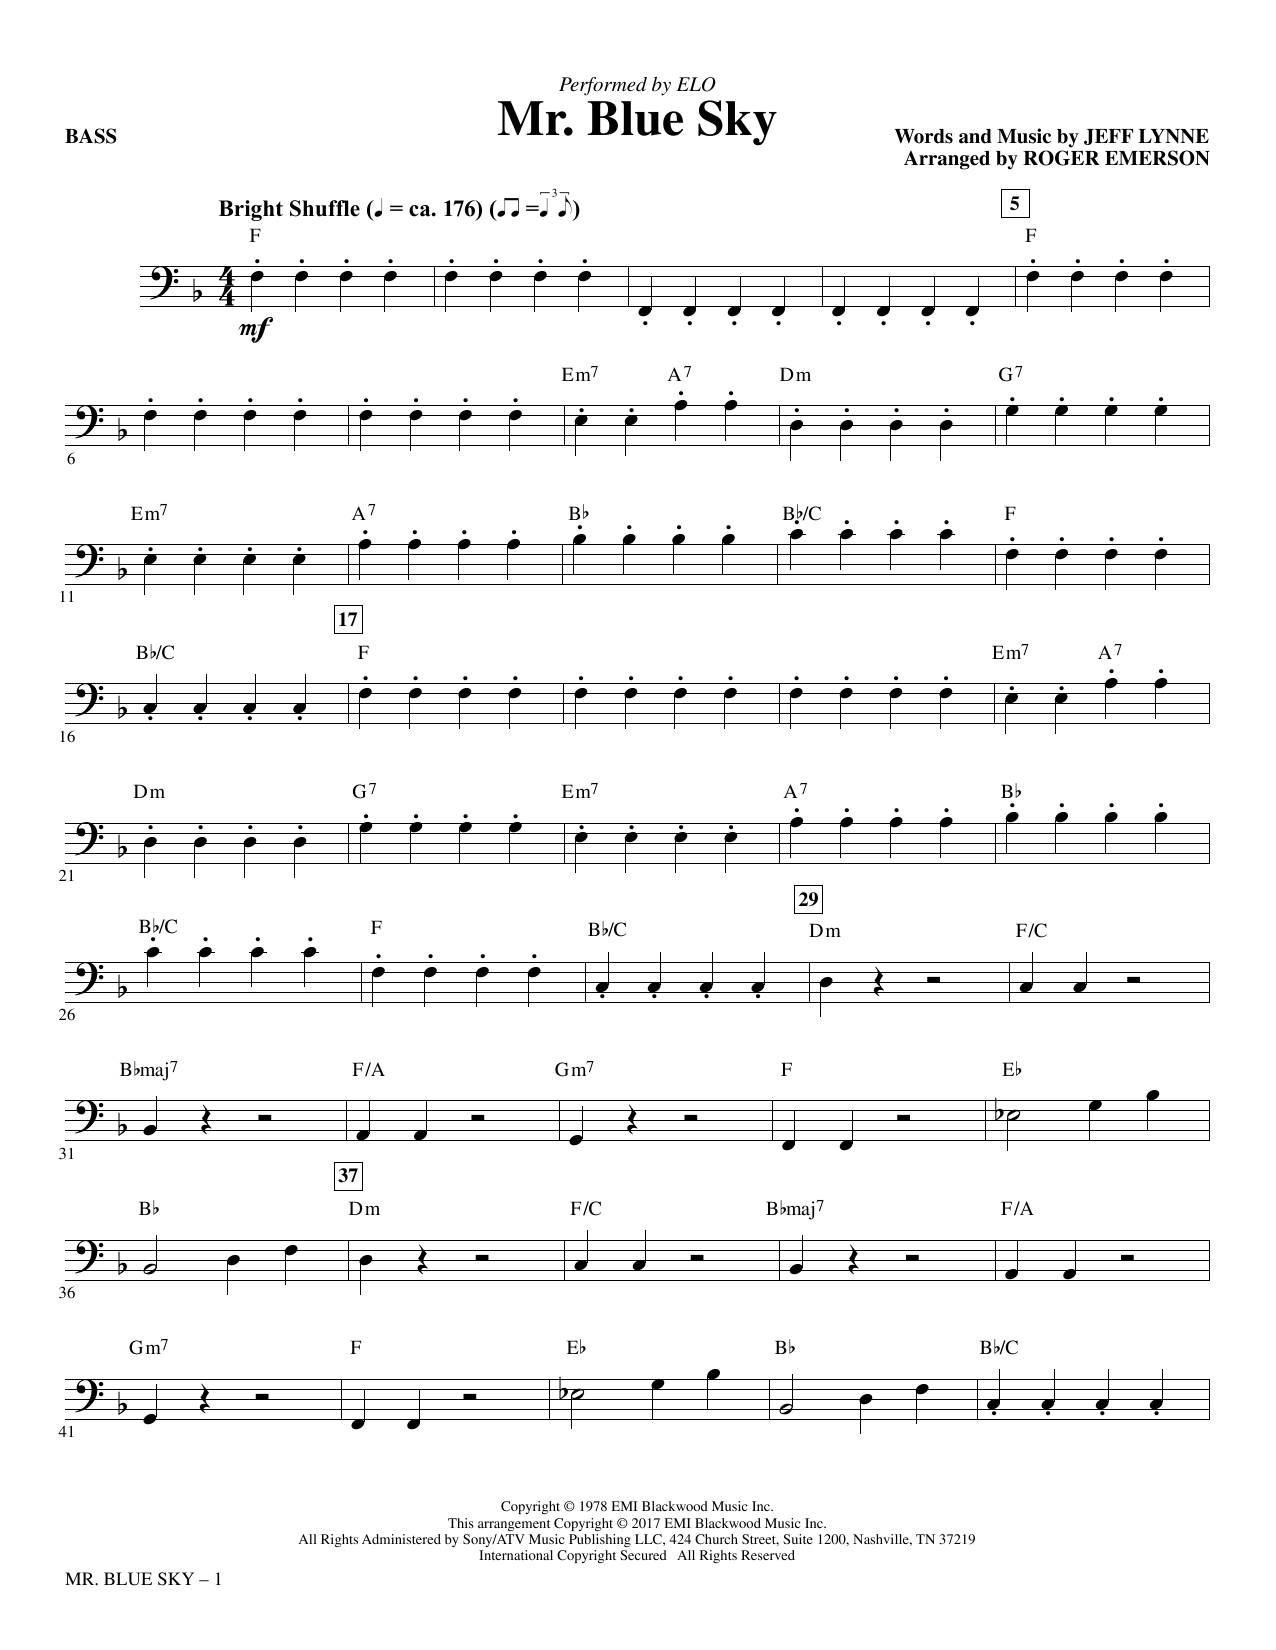 Sheet Music Digital Files To Print - Licensed Electric Light